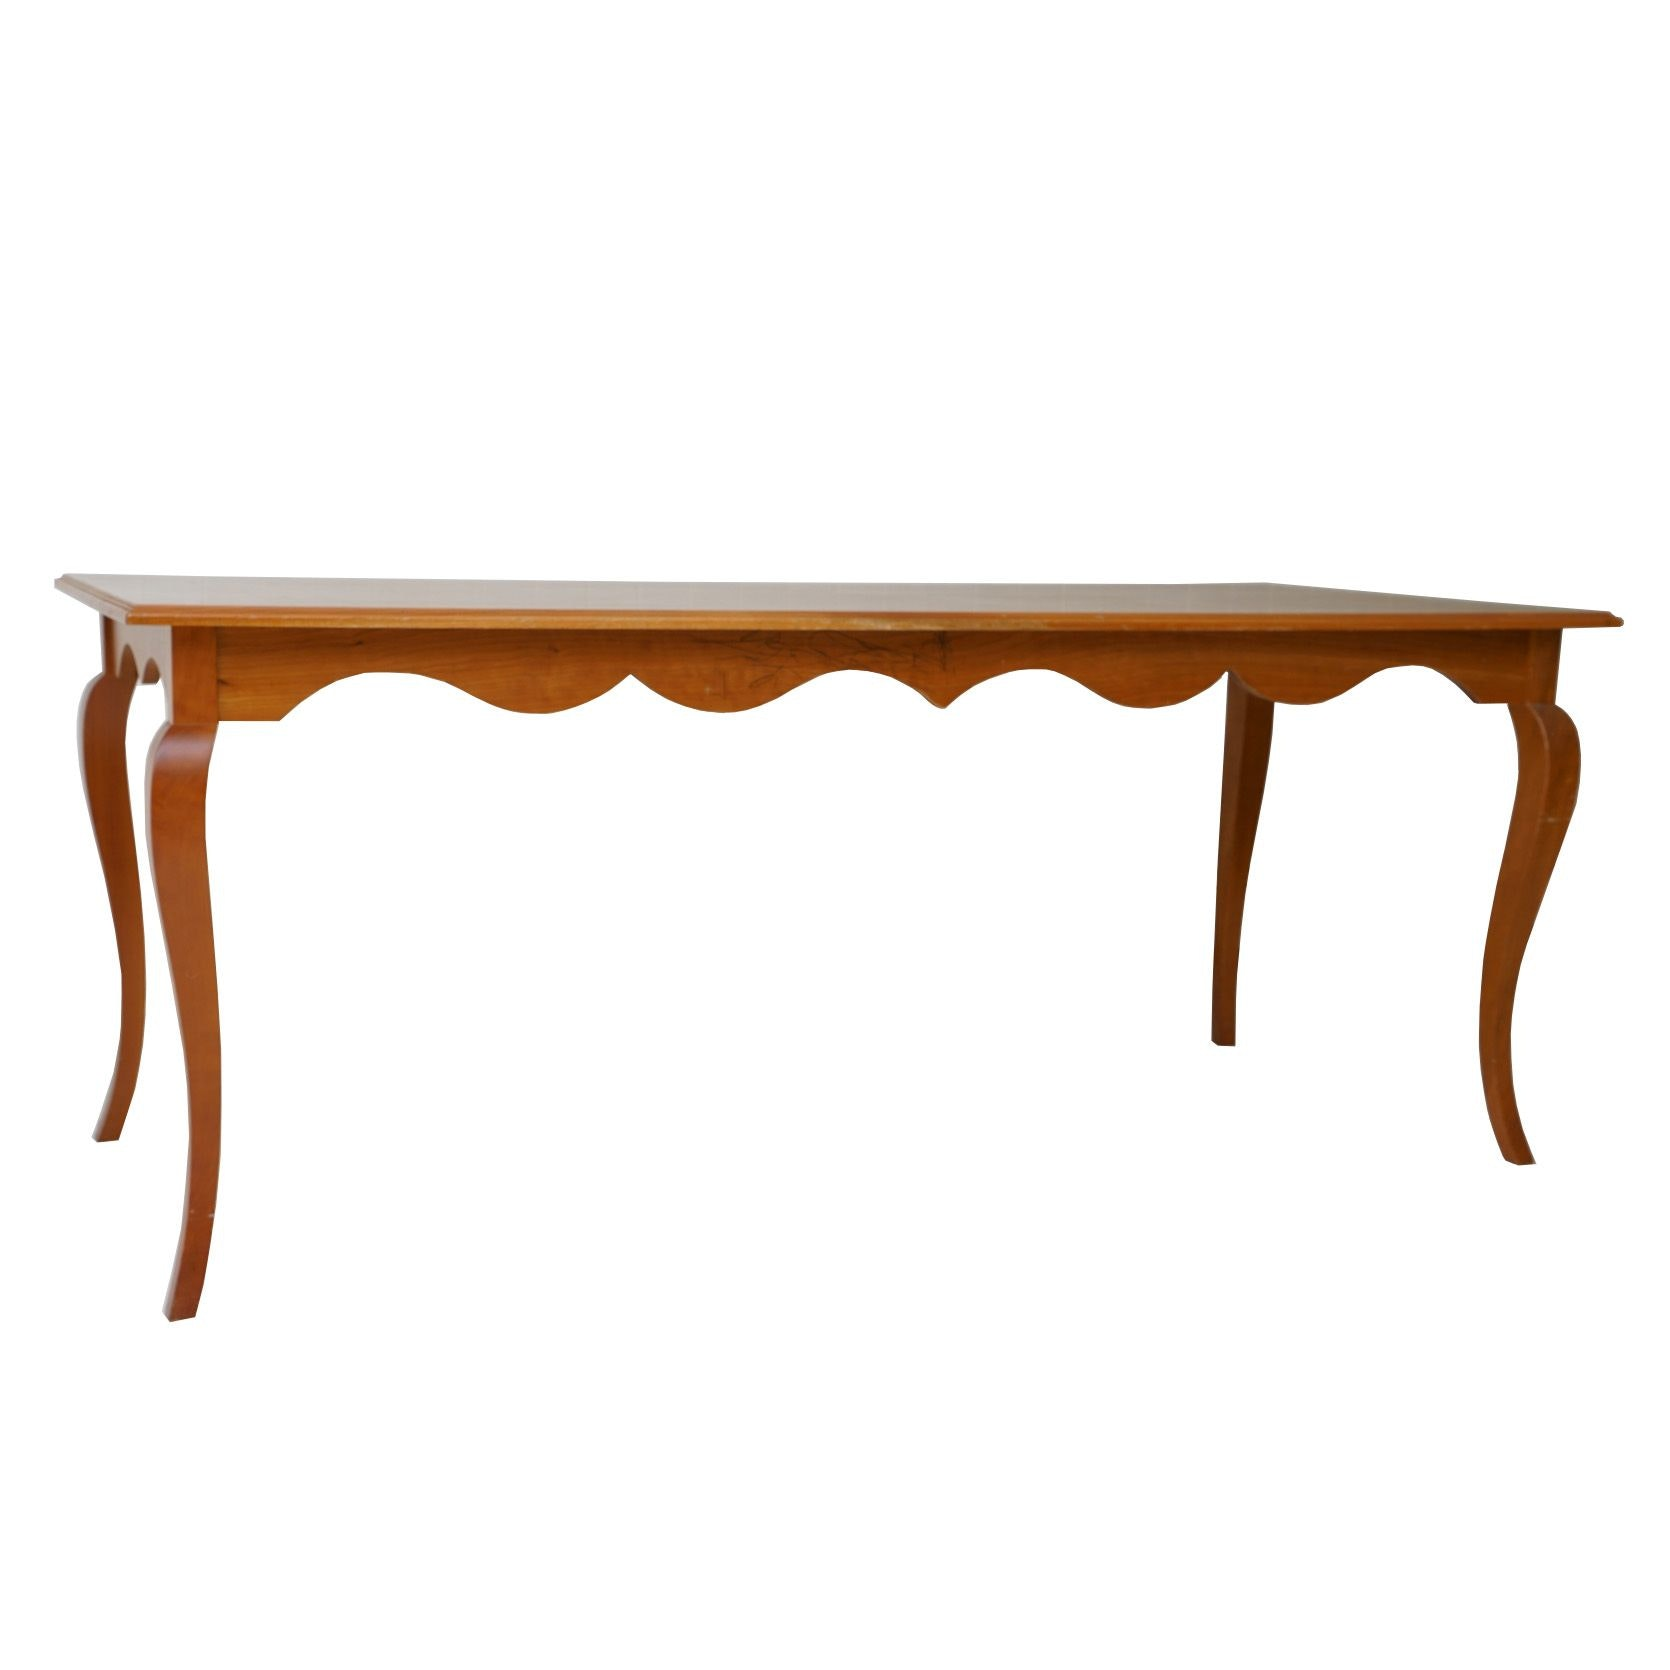 French Provincial Style Walnut Dining Table